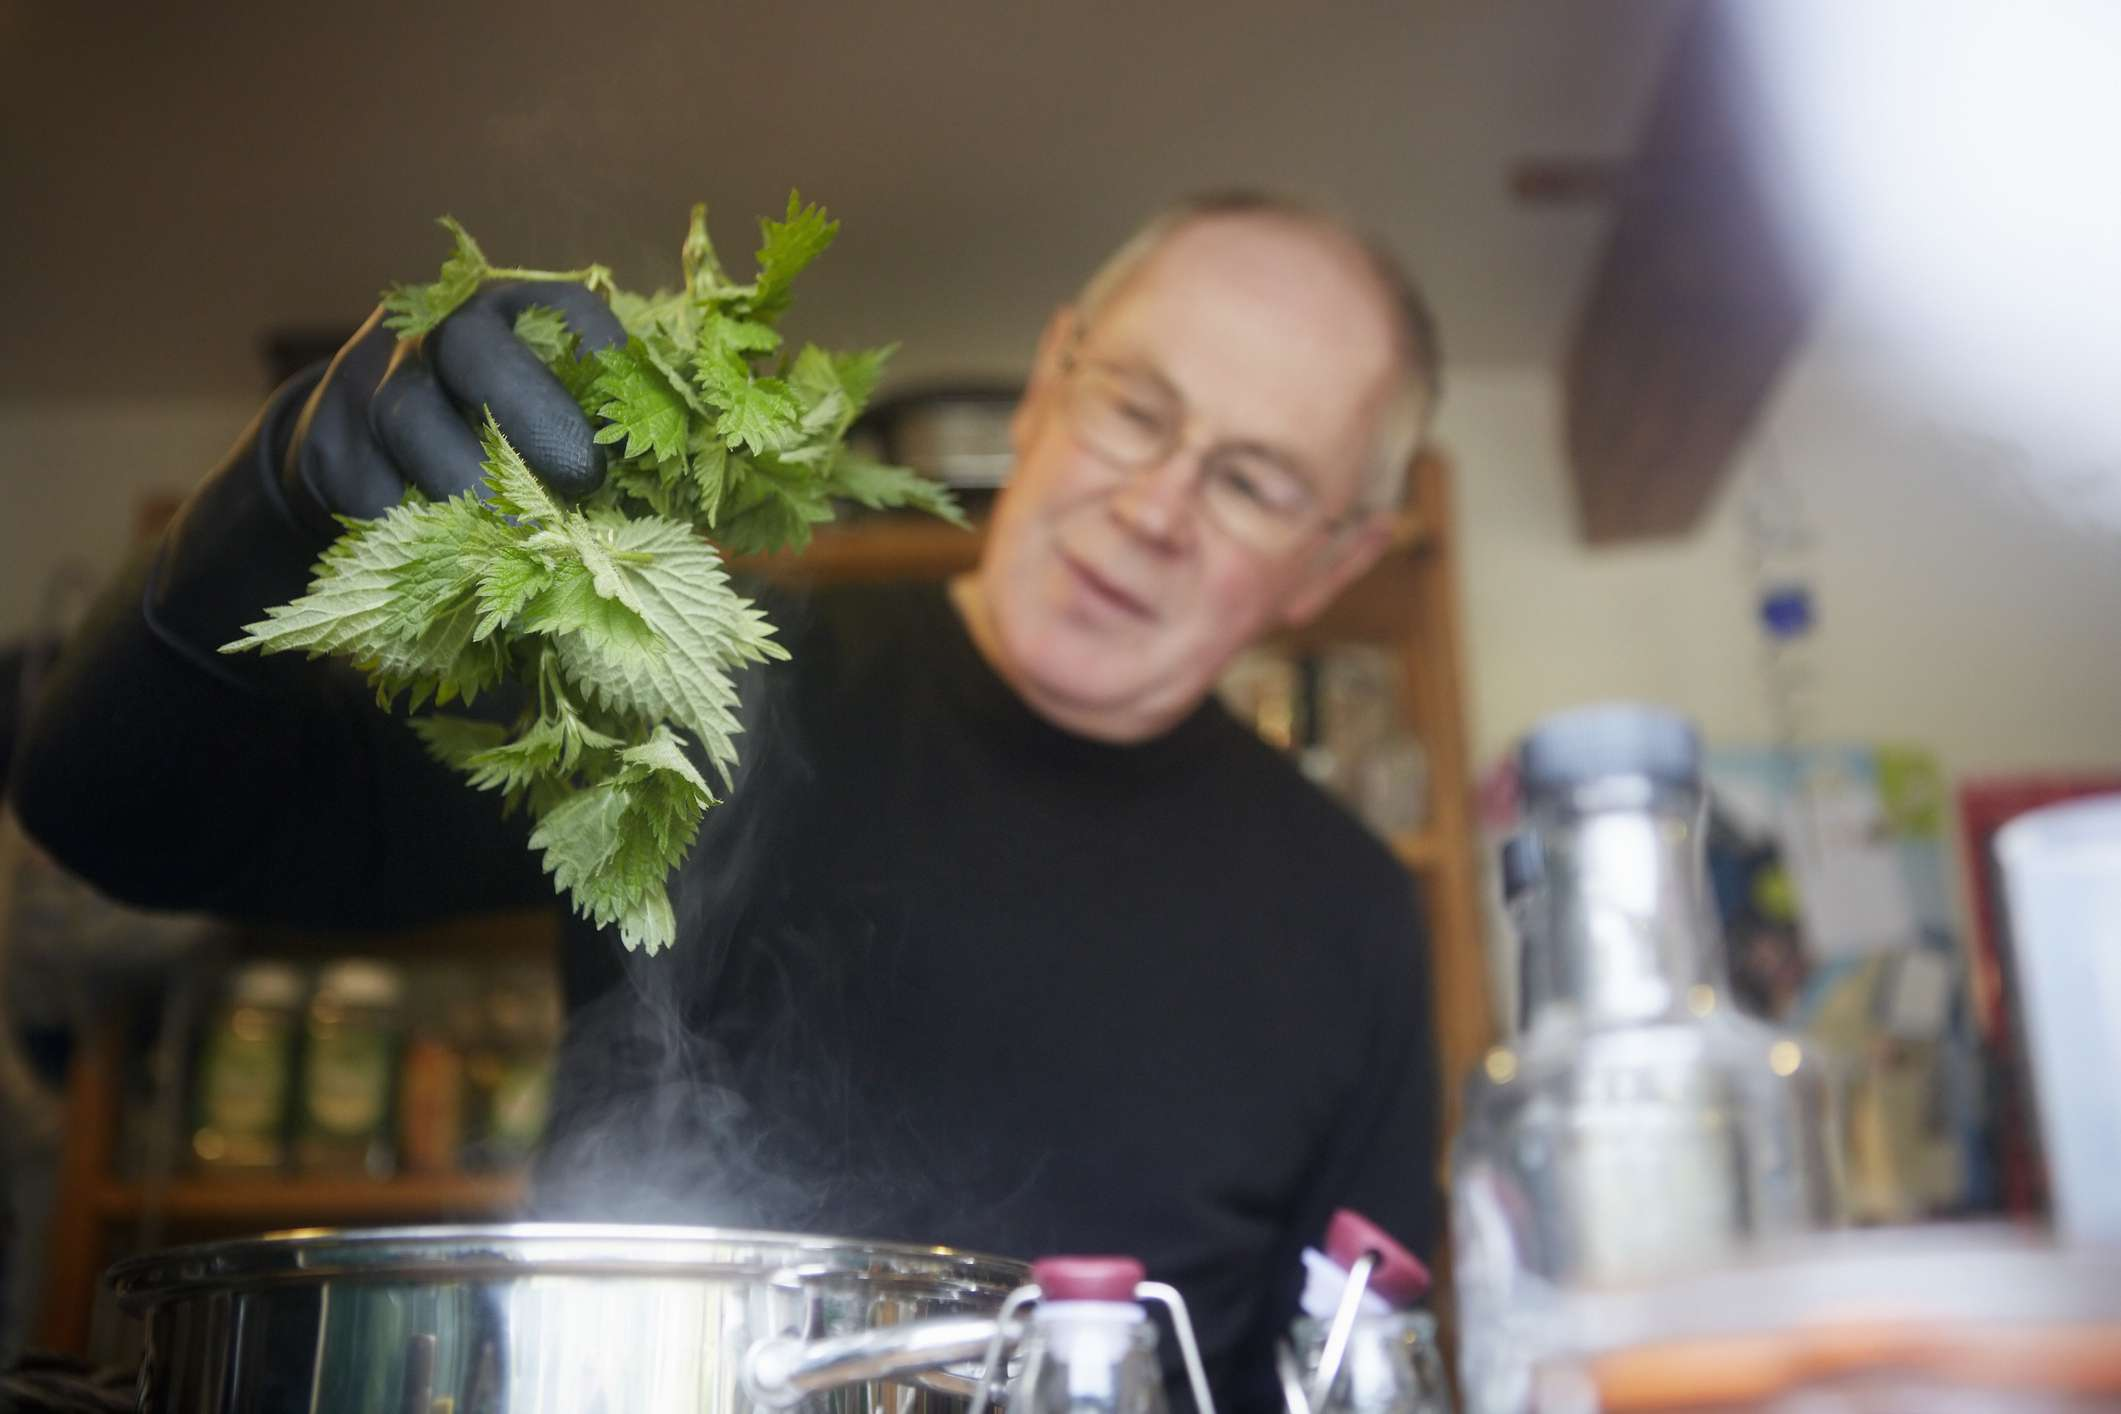 Cooking with stinging nettle